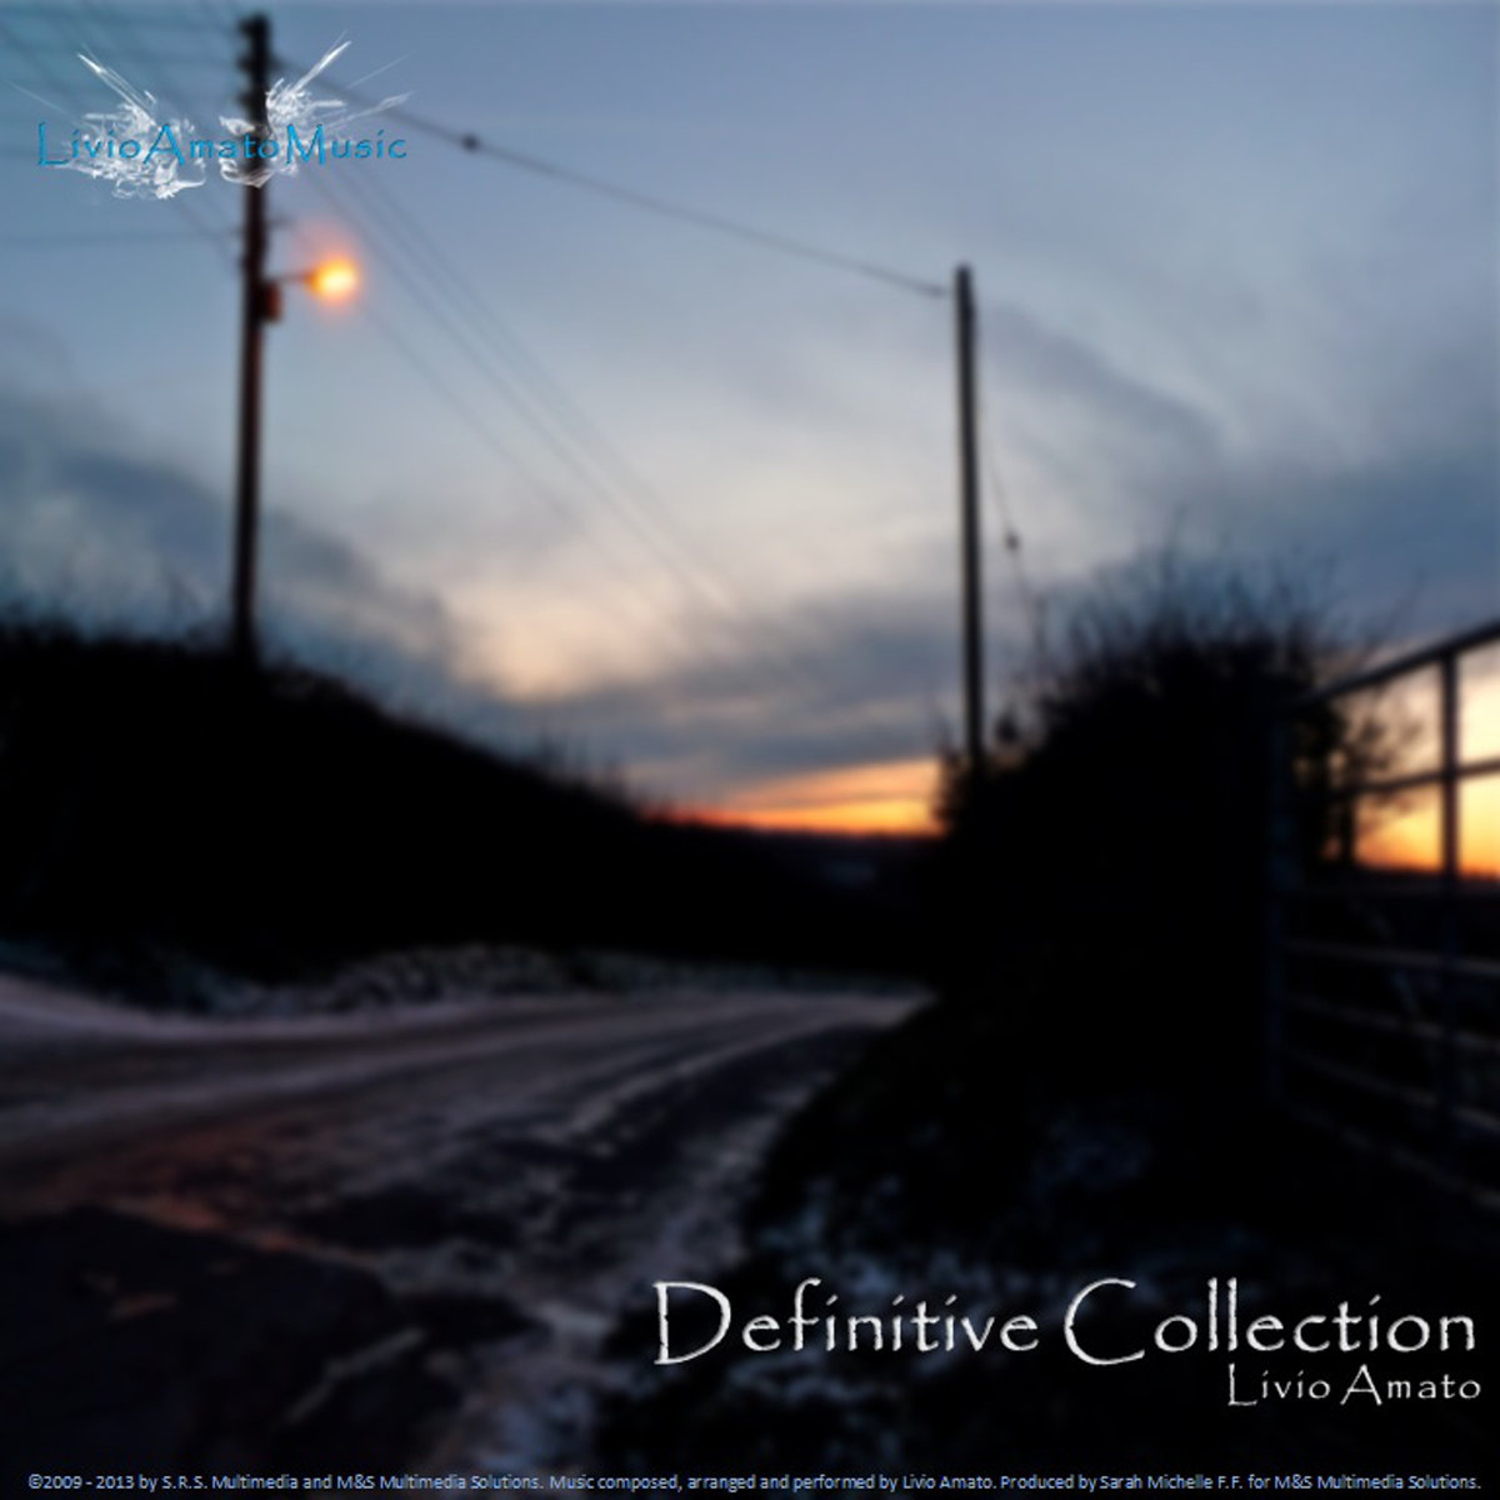 Livio Amato Definitive Collection